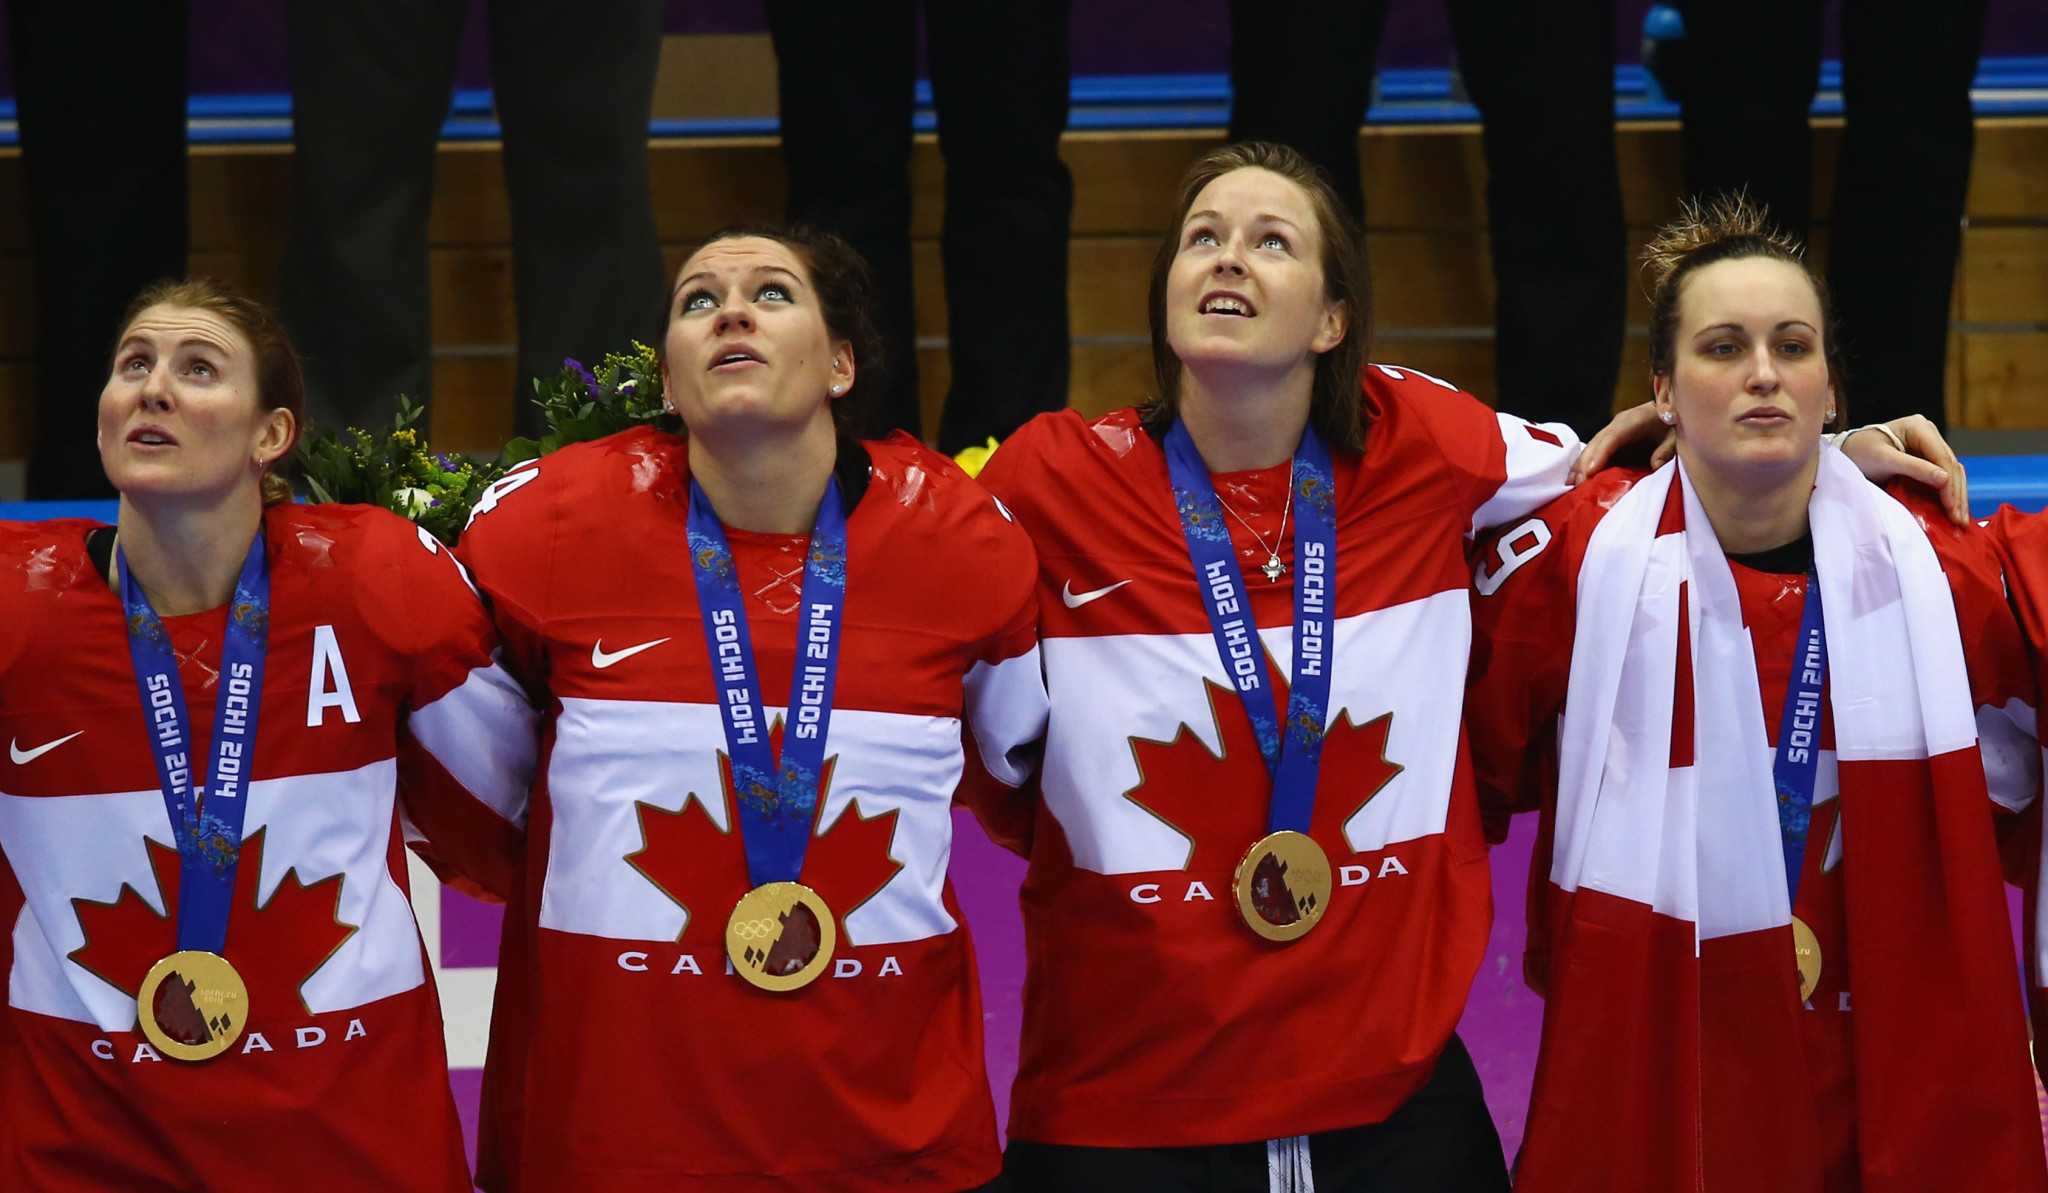 Canada's Hayley Wickenheiser, left, celebrates winning her fourth consecutive Olympic gold medal at Sochi 2014 ©Getty Images